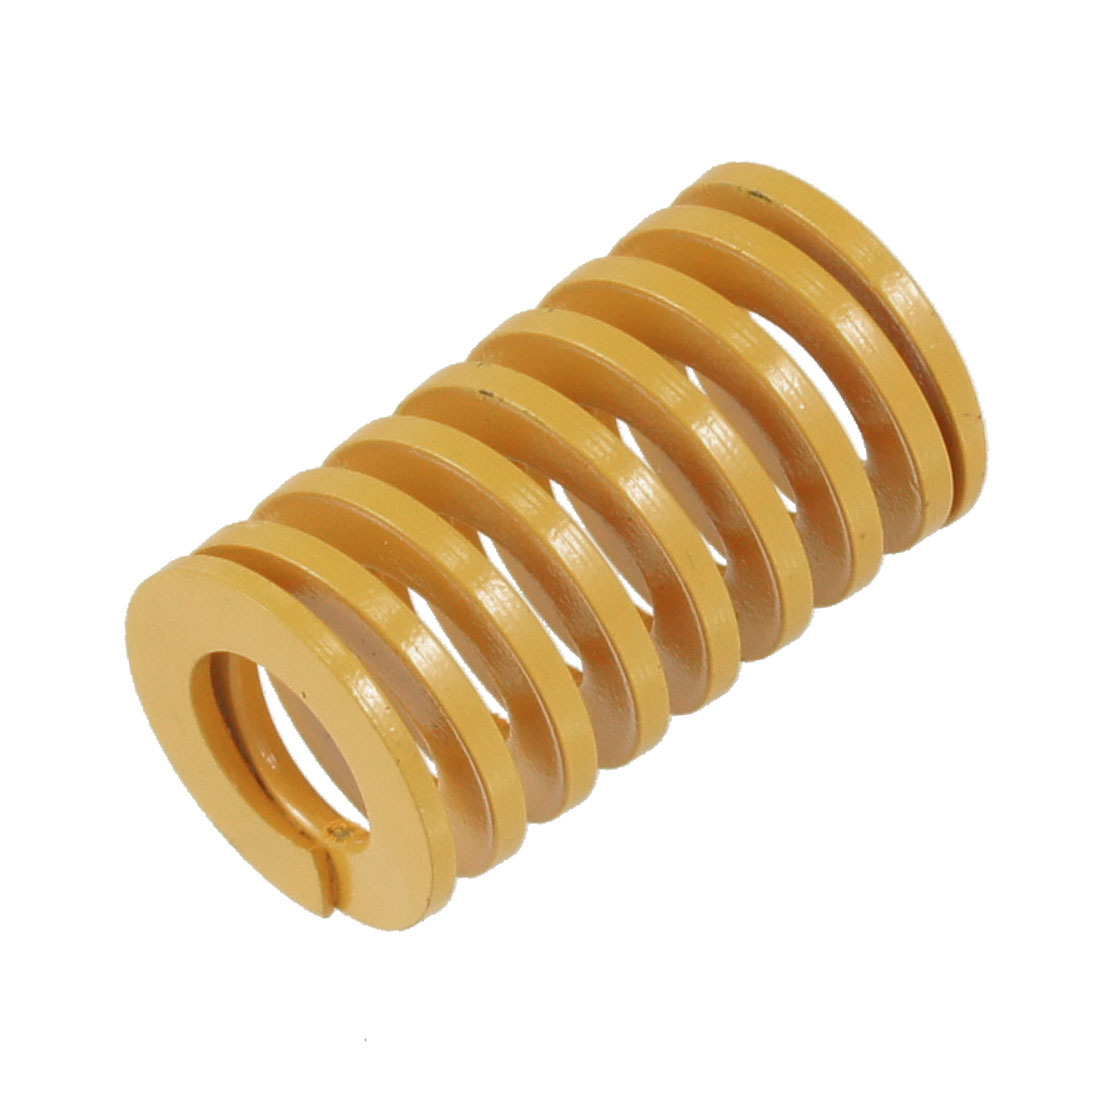 Orange 20mm x 11mm x 35mm Metal Tubular Section Mould Die Spring